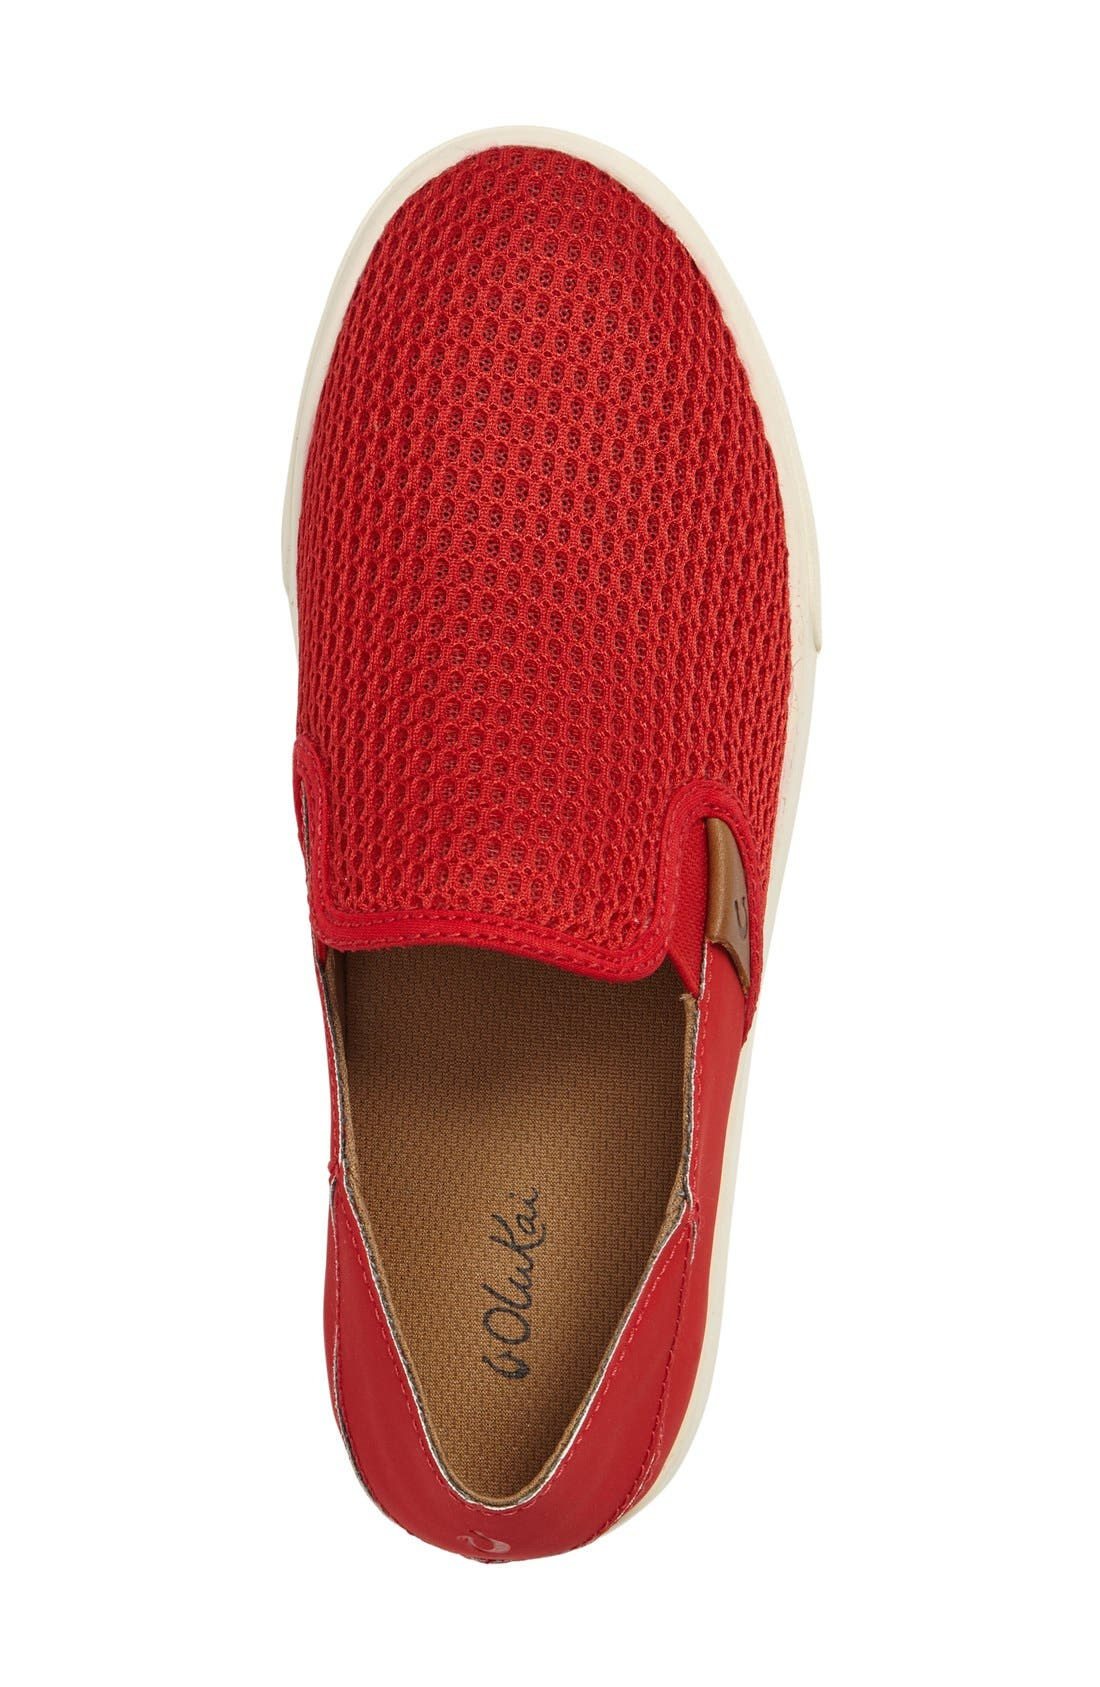 Alternate Image 3  - OluKai 'Pehuea' Slip-On Sneaker (Women)